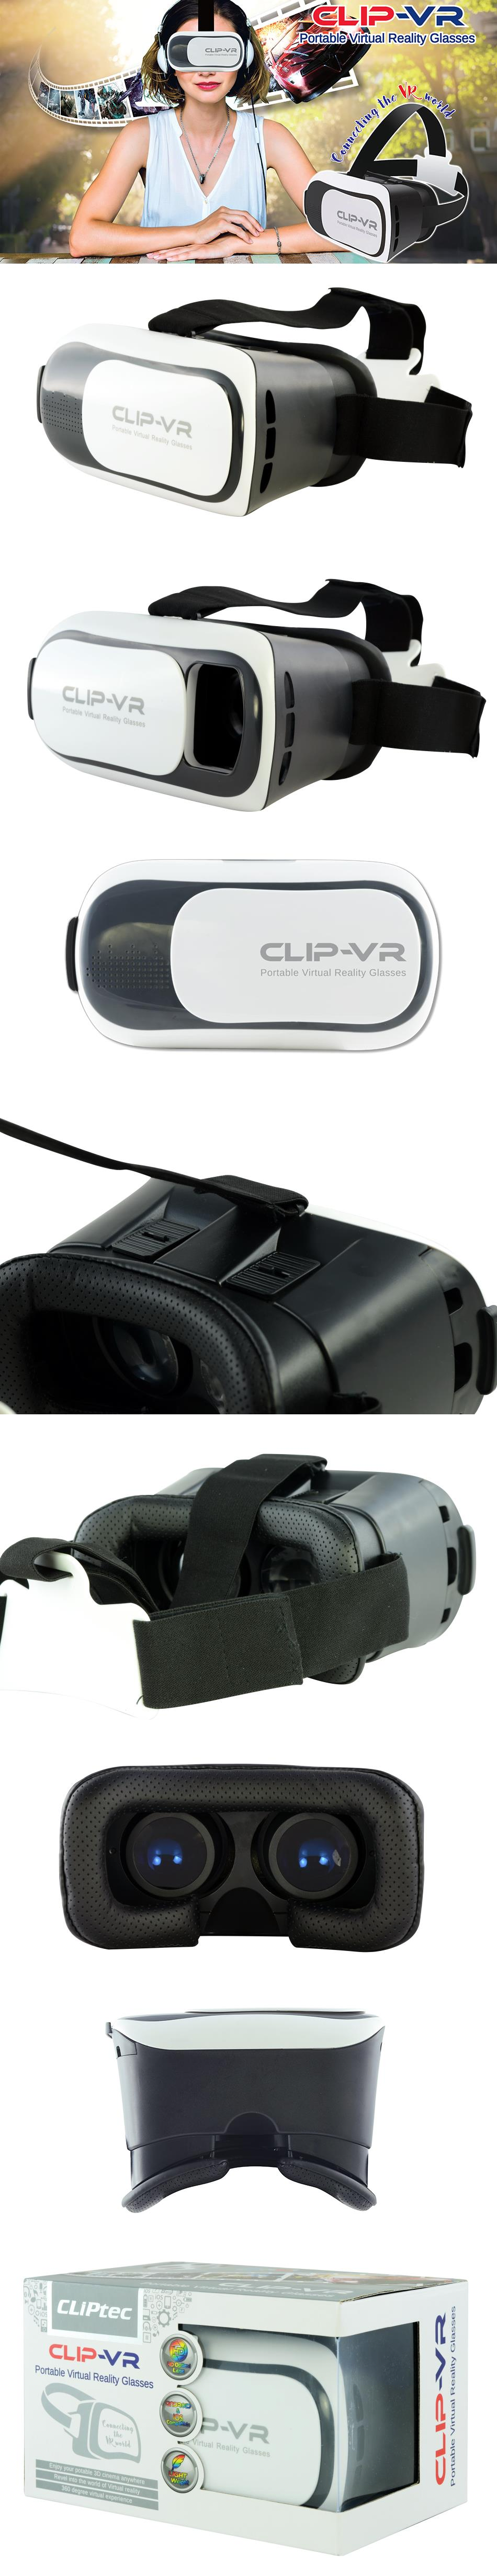 CLiPtec CLIP_VR Portable Virtual Reality VR HD Optical Glasses PVR200